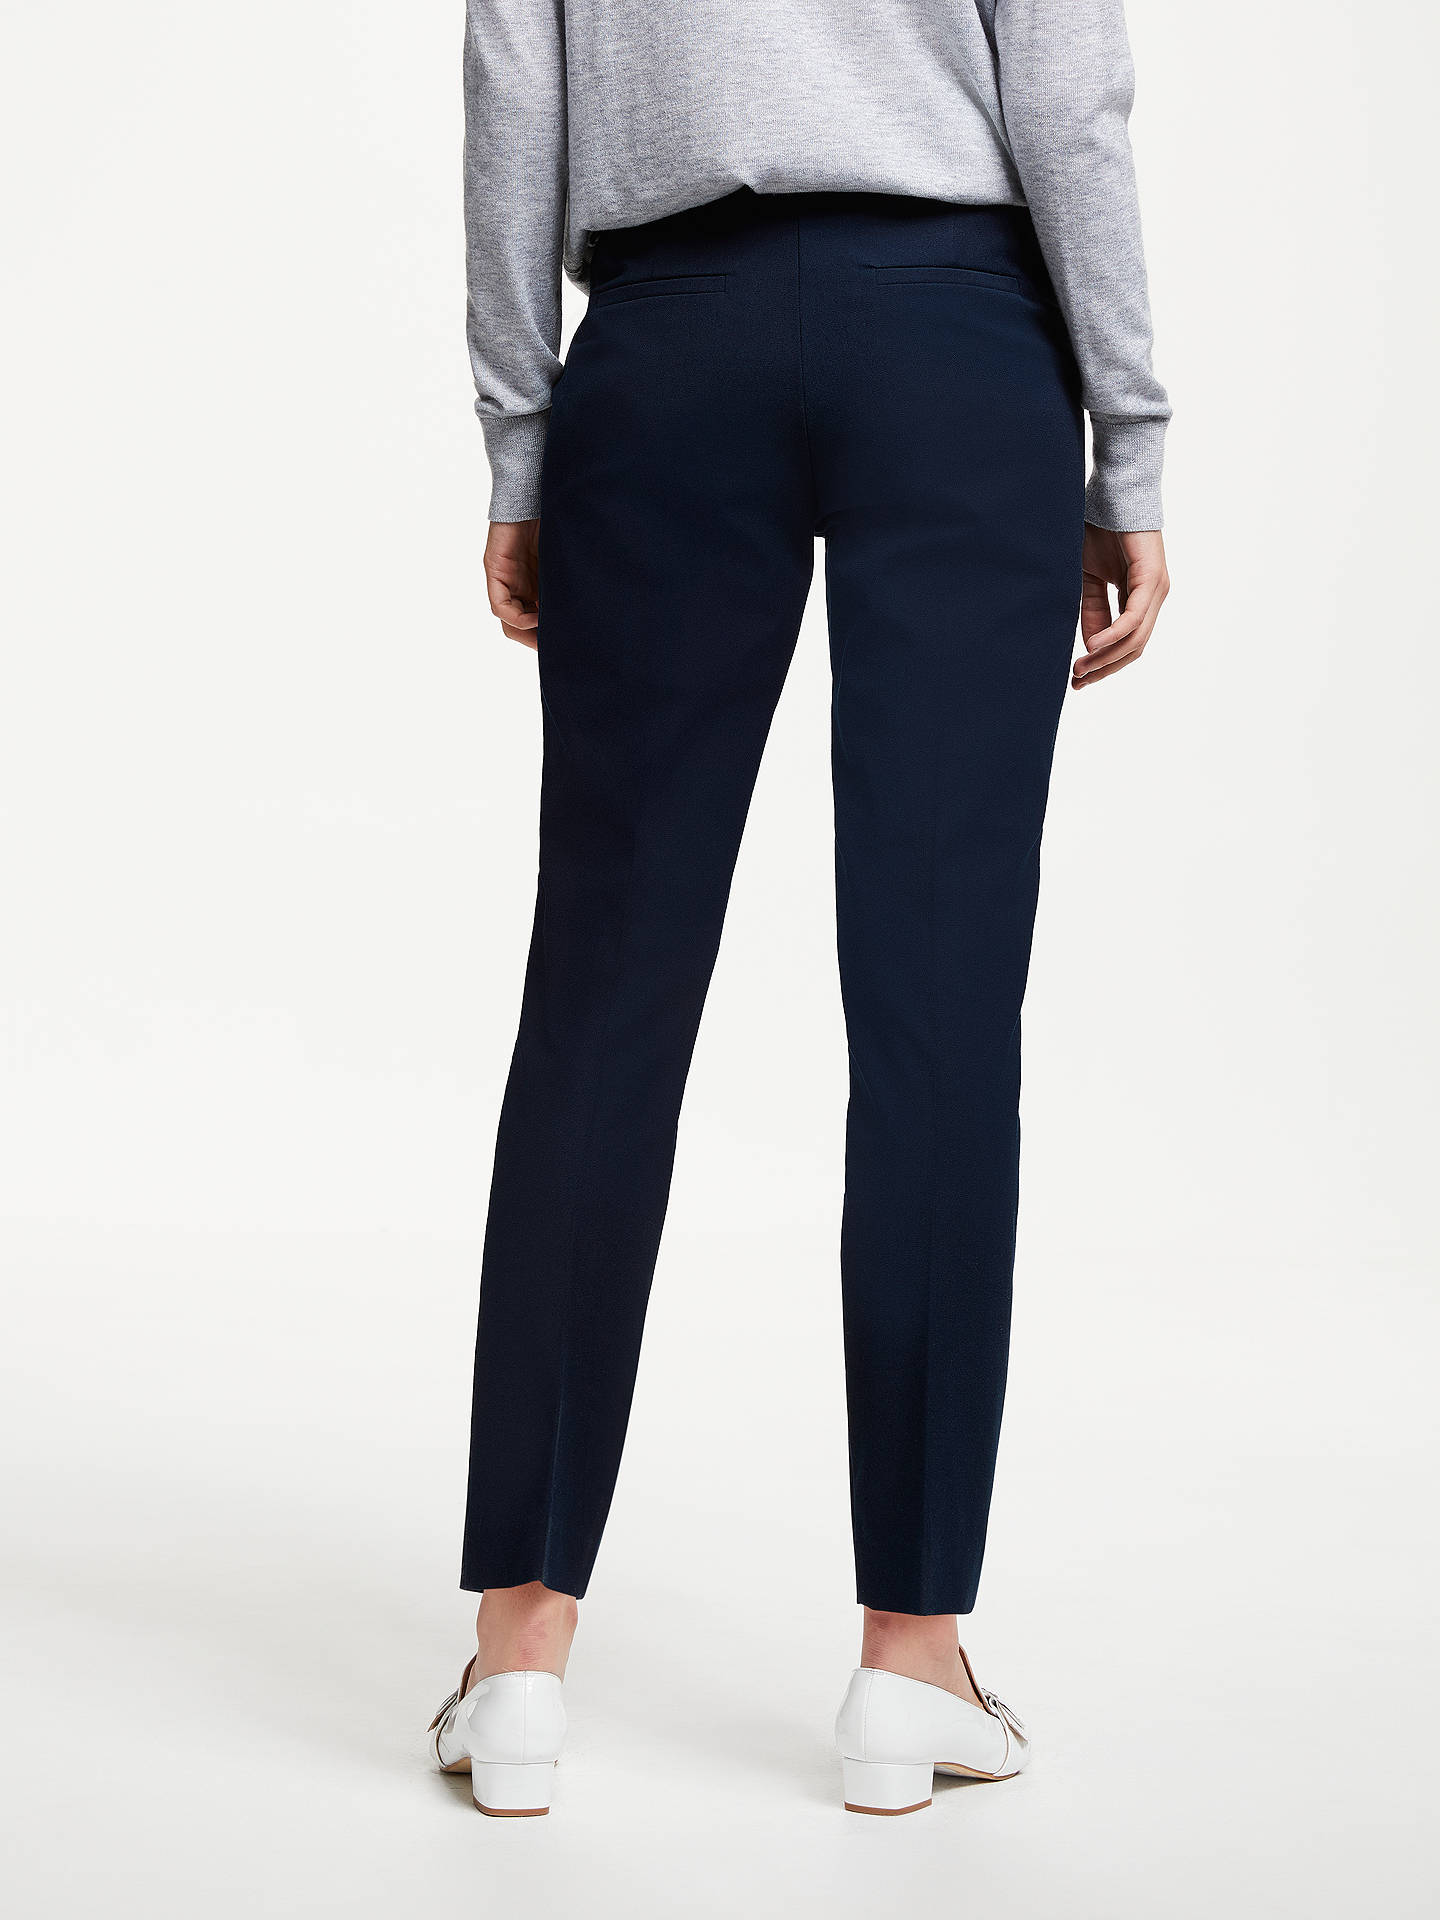 BuyJohn Lewis & Partners Dionne Trousers, Navy, 8 Online at johnlewis.com